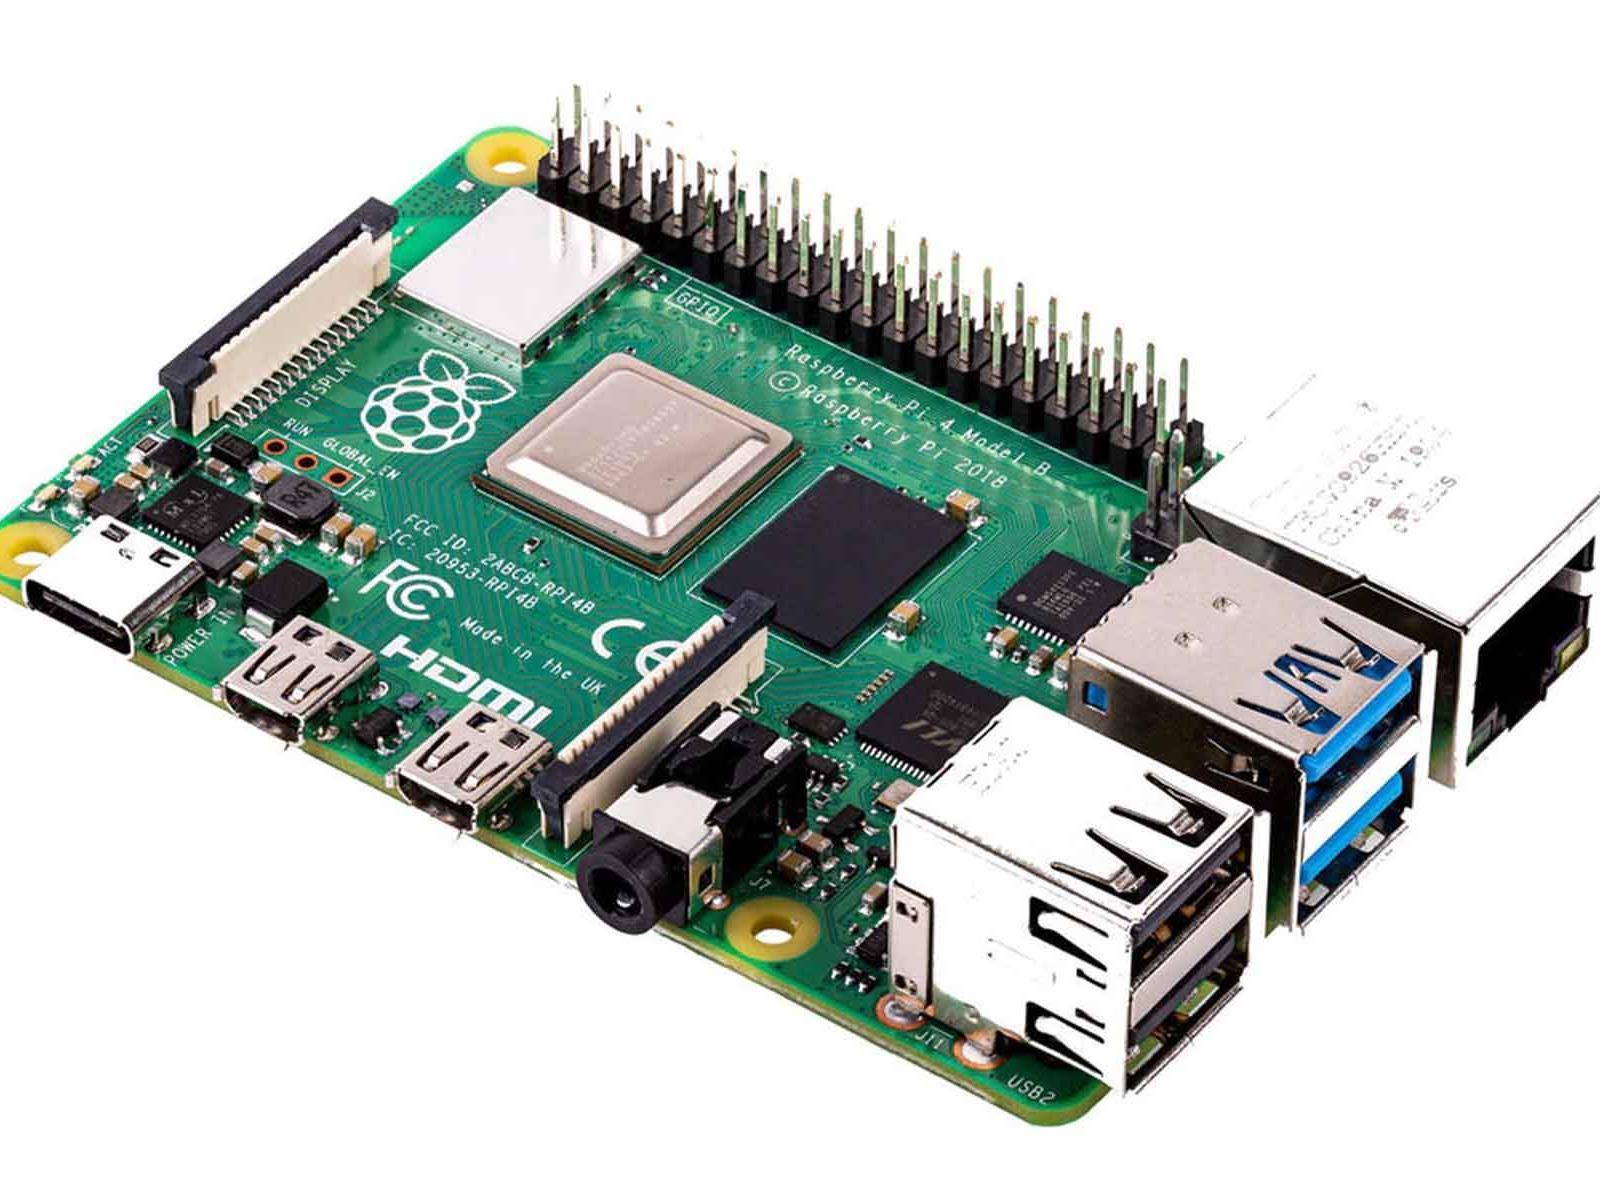 Raspberry Pi 4 Debuts With Dual 4K Display Support And Up To 4GB RAM